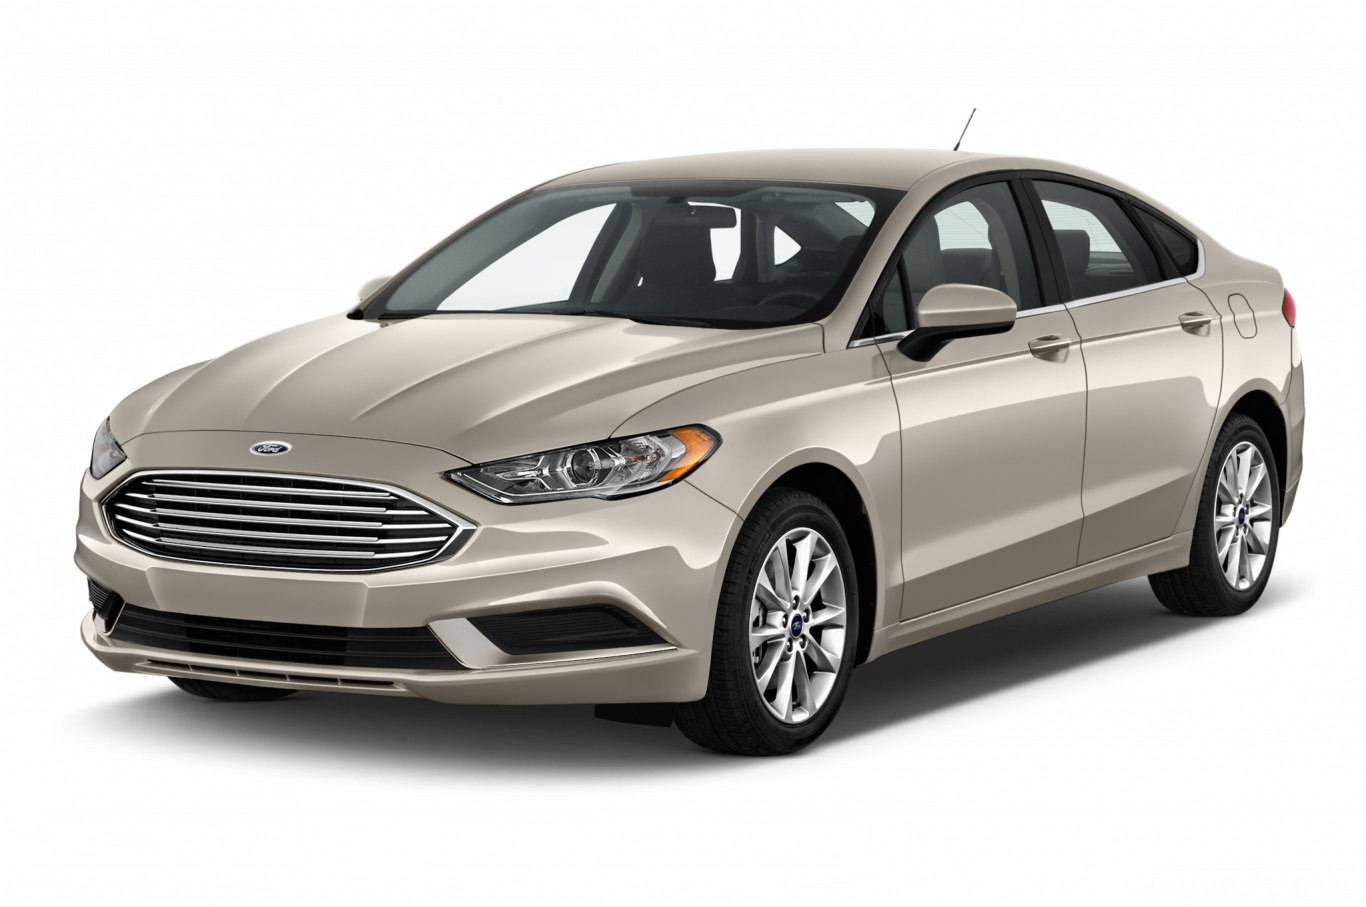 Xe Ford Fusion 2019